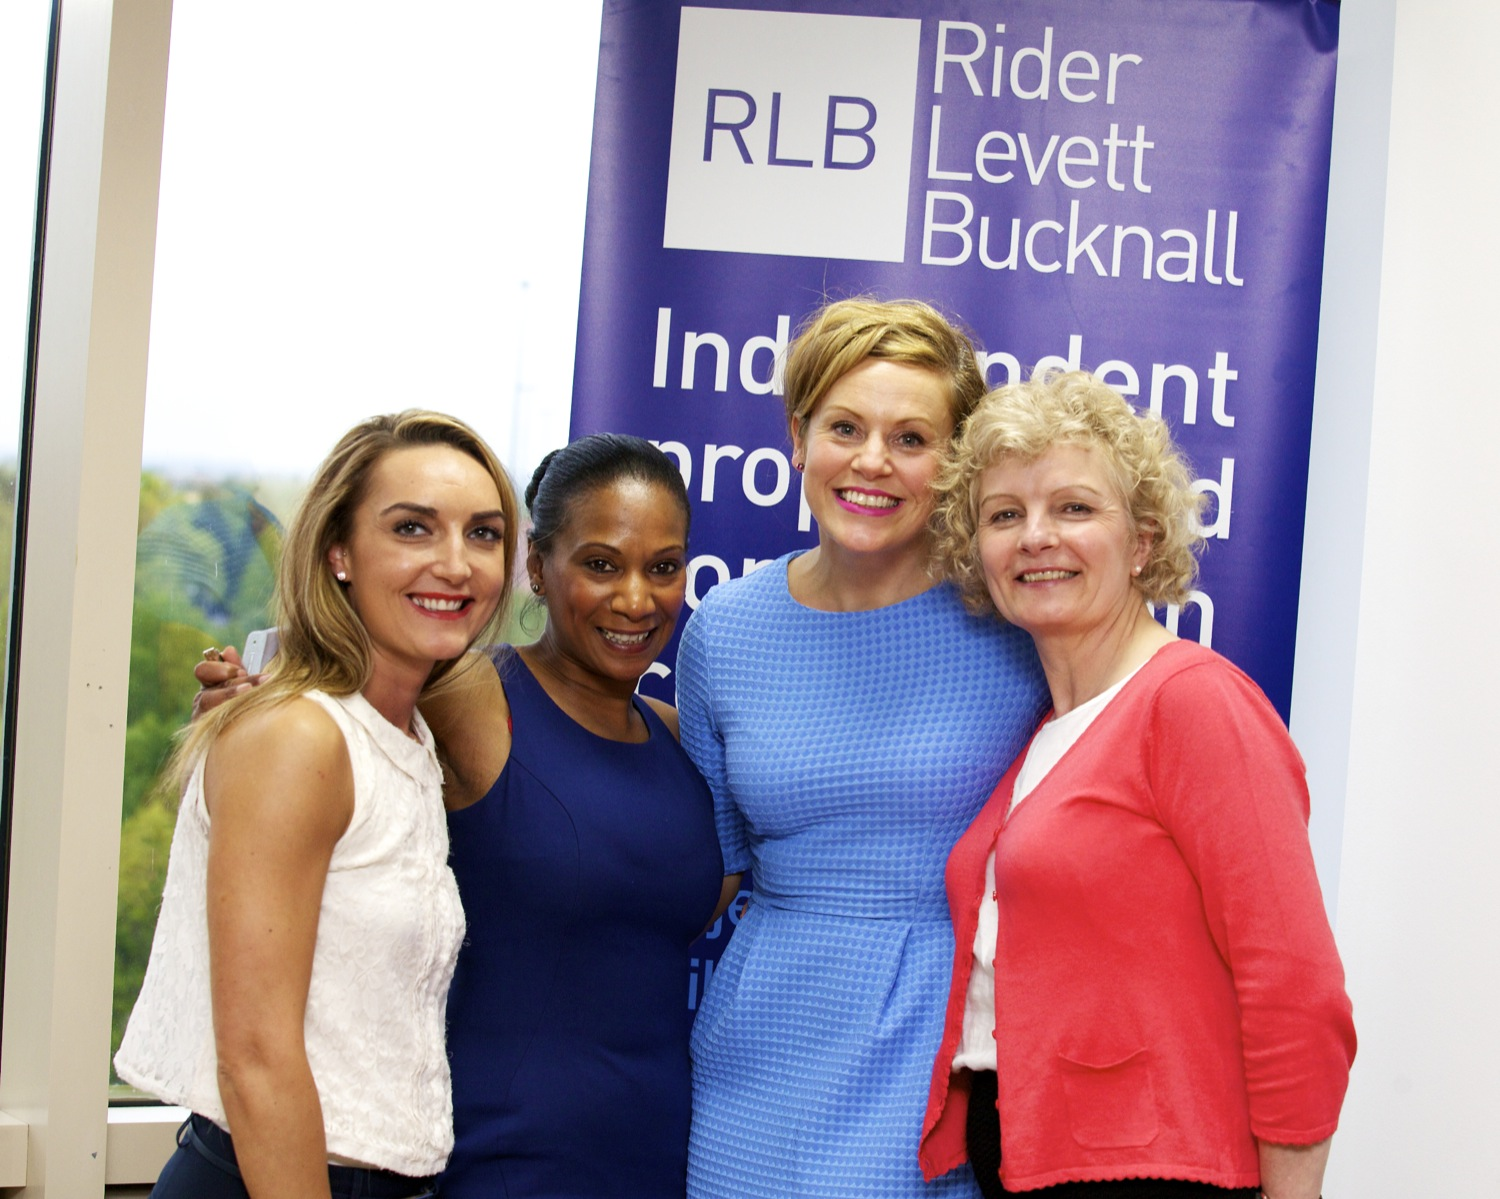 RLB Event 21 05 2015_31©Matthew Nichol Photography.jpg